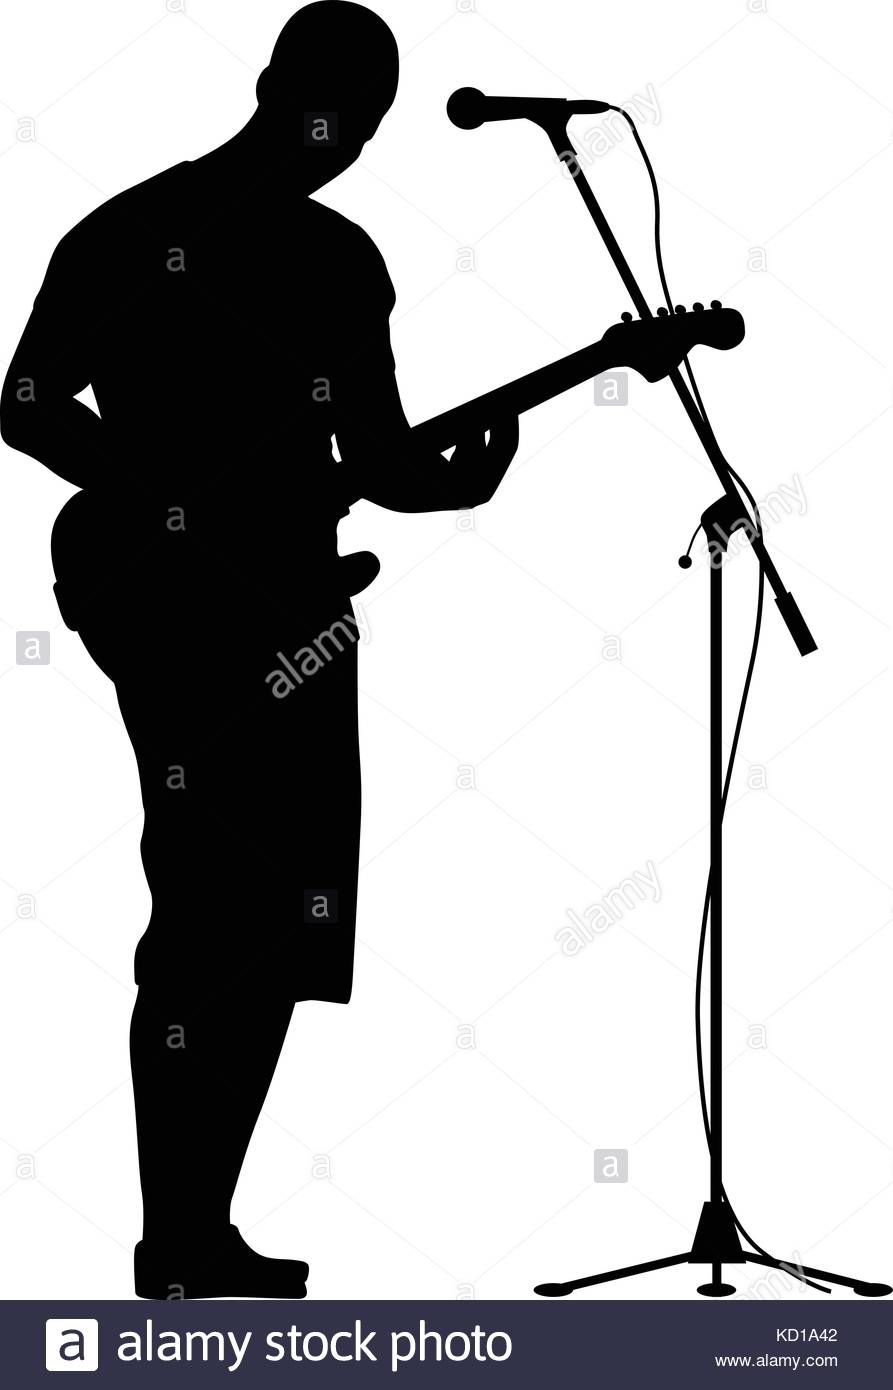 893x1390 Silhouettes Of Woman Singing And Using Megaphone Royalty Free